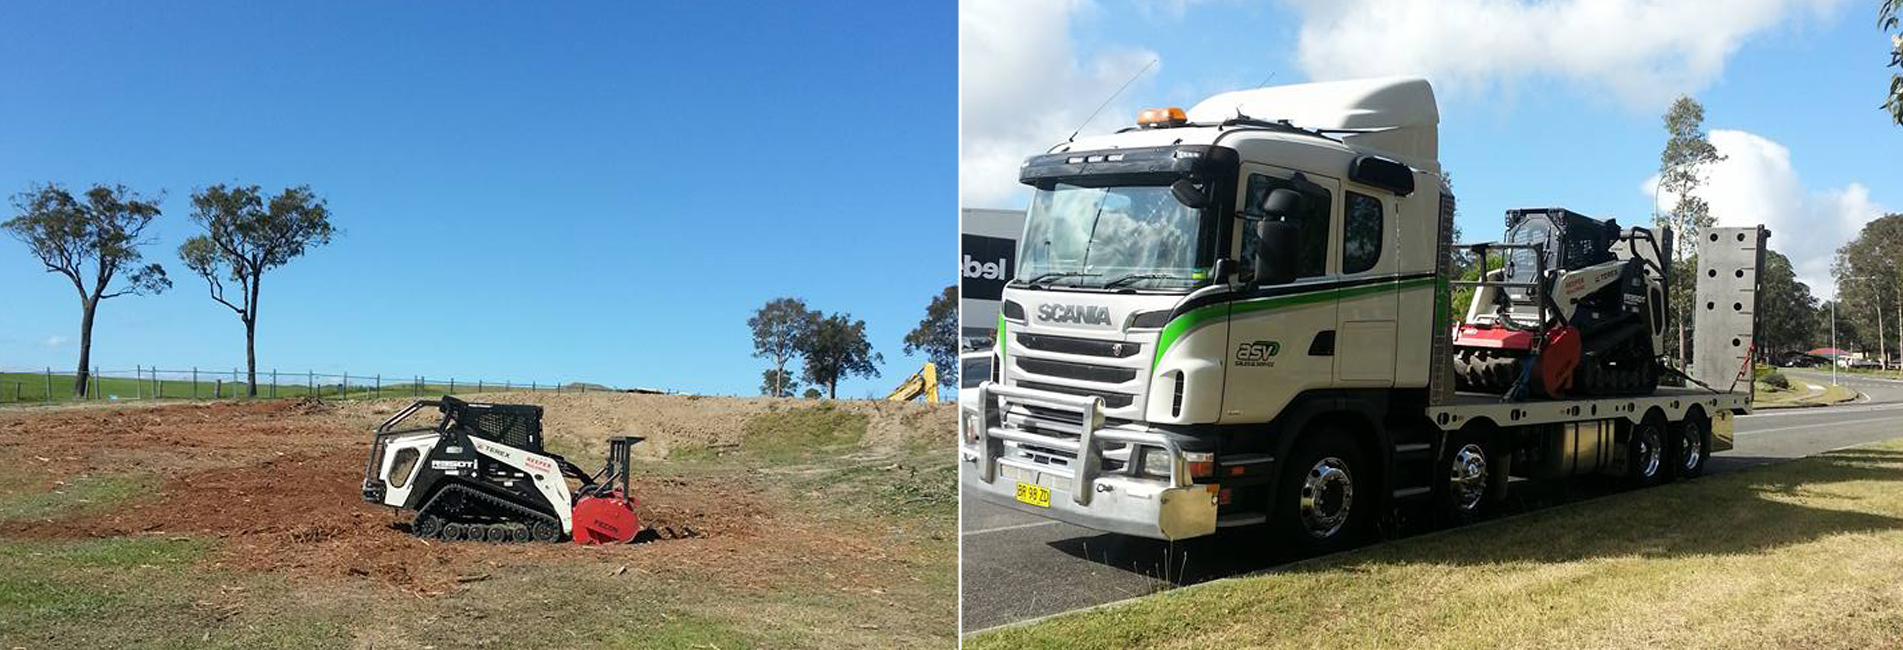 Under Scrubbing Newcastle, Woodchipping Tuggerah, Tree Removal Woy Woy, Tree Surgery Central Coast, Excavations Gosford, Land Clearing Bateau Bay